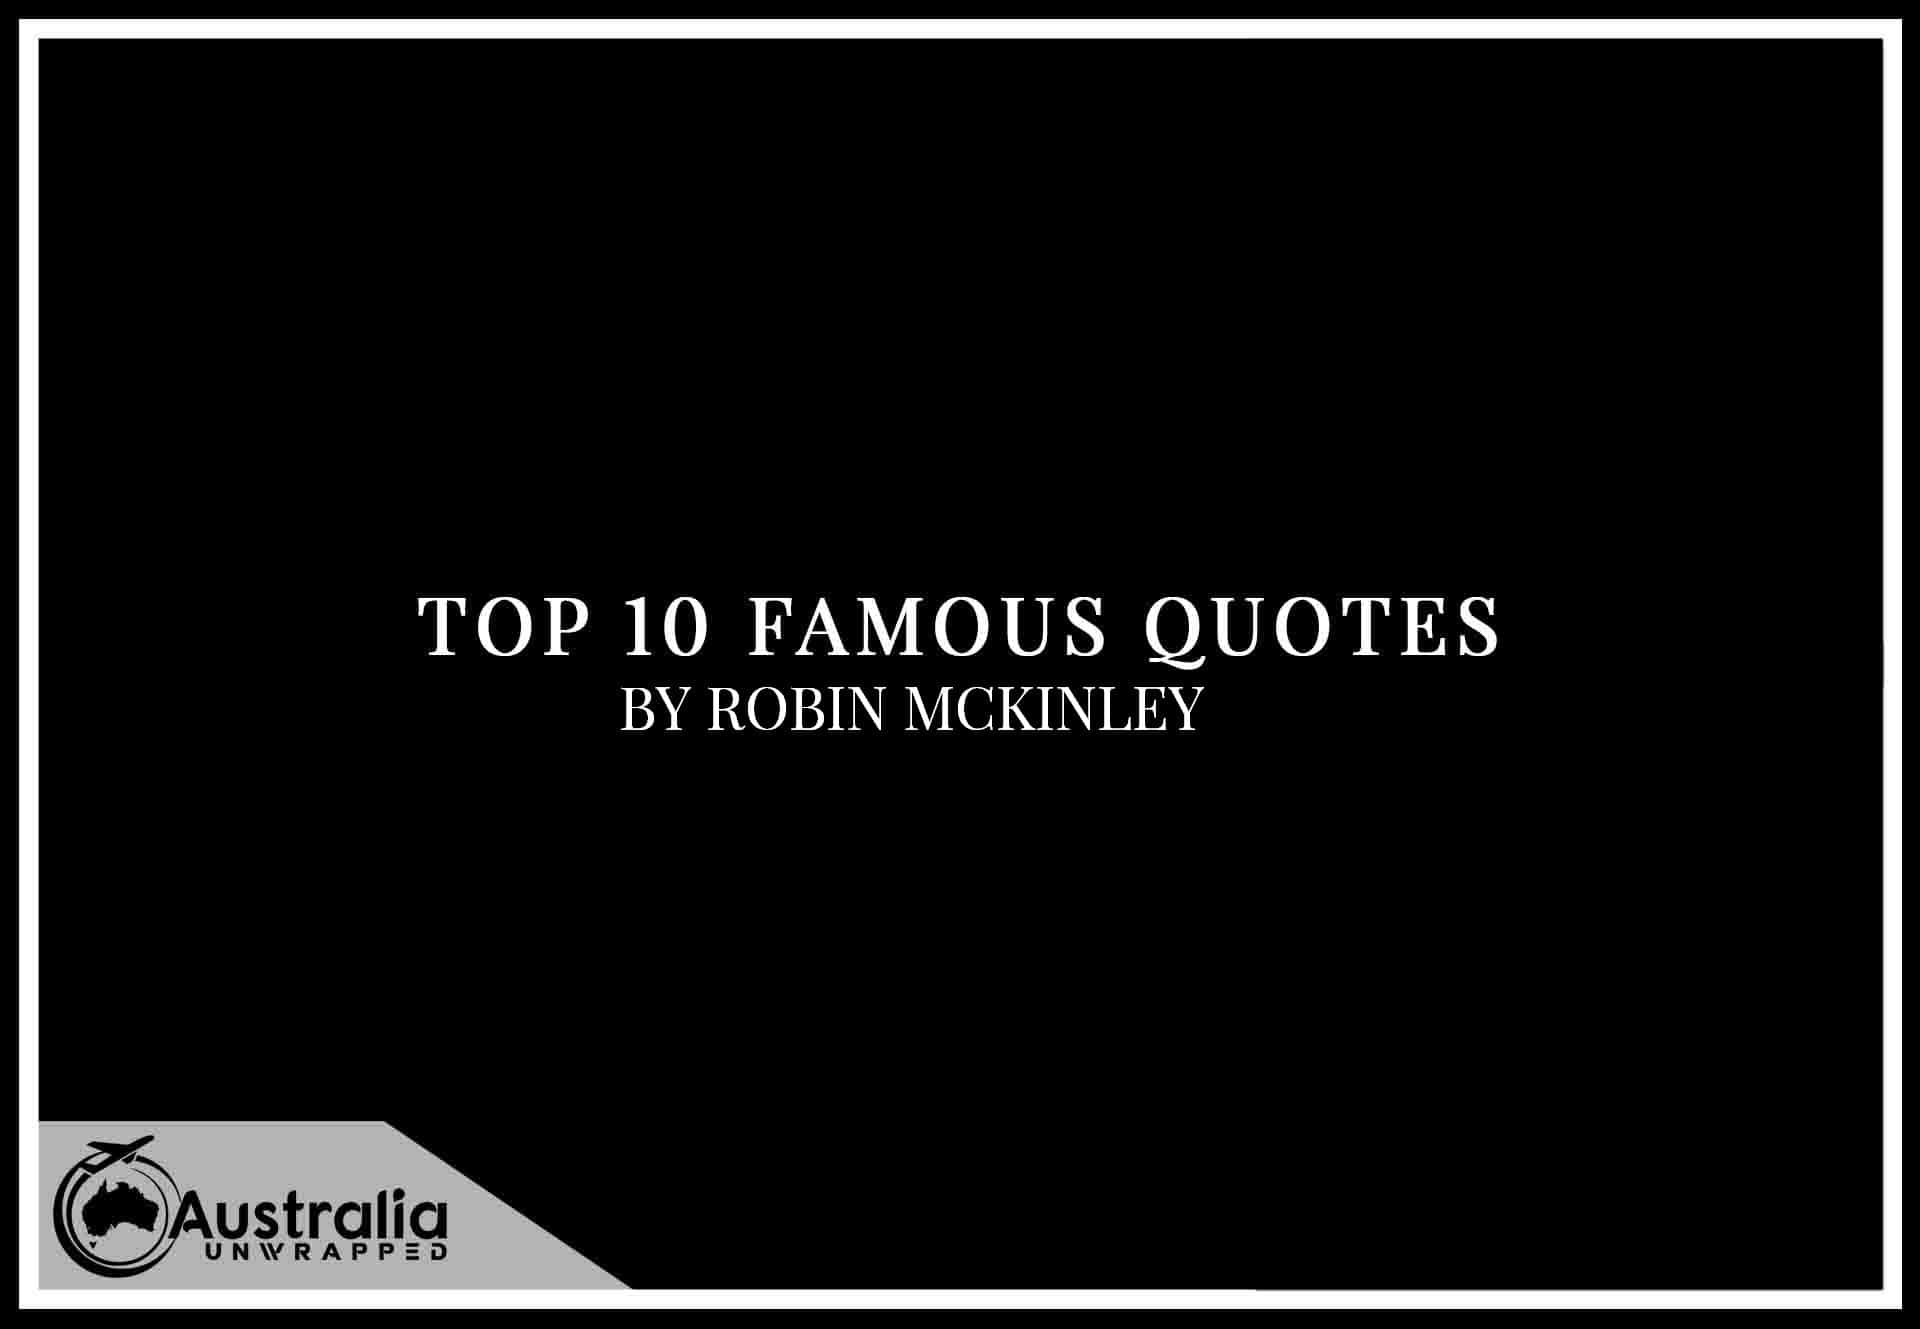 Robin McKinley's Top 10 Popular and Famous Quotes